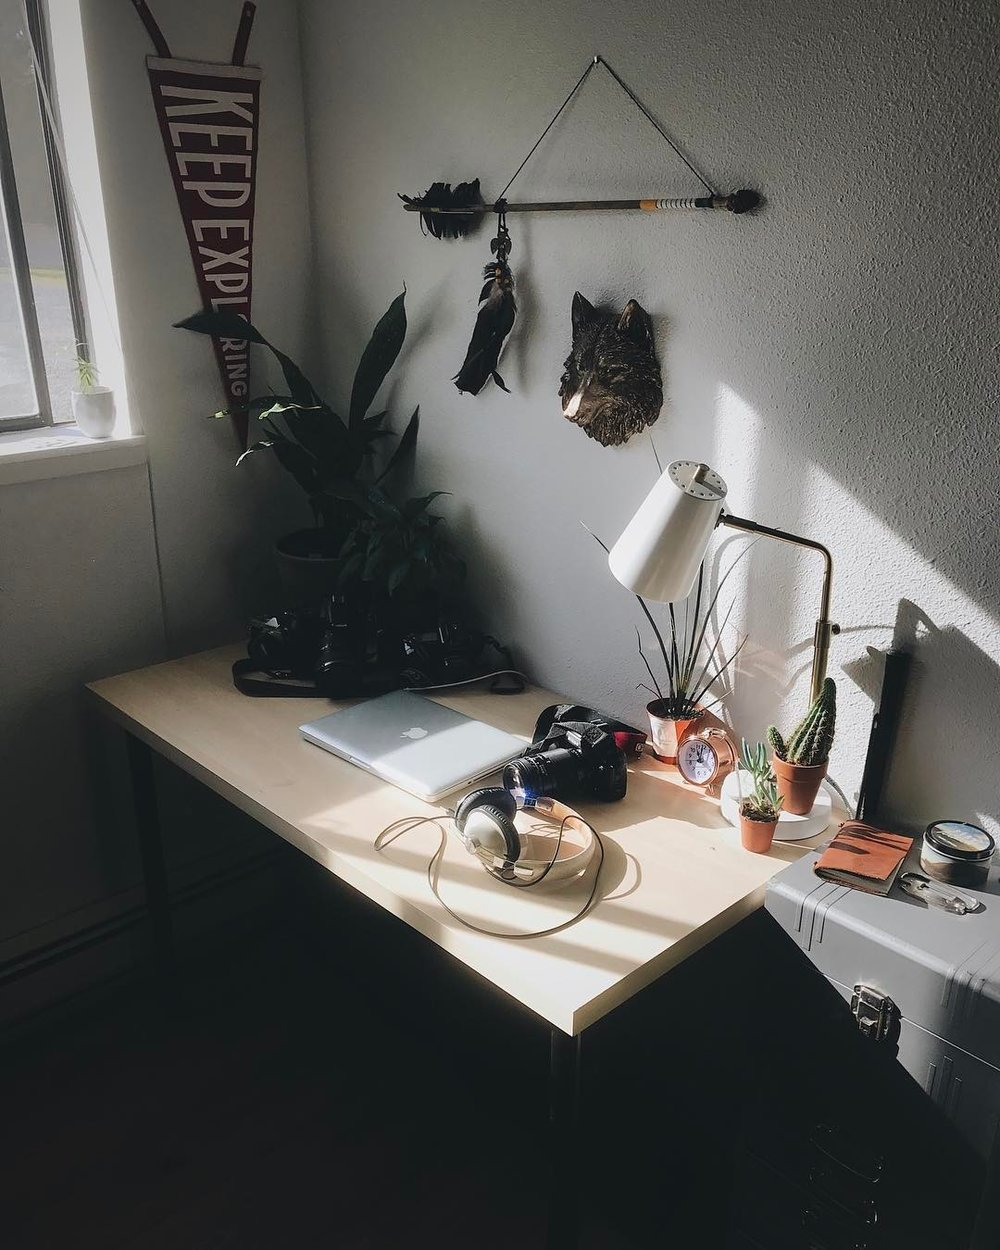 A creative workspace, like @thenewmanco's sunny spot, is perfected with succulents and our KE pennant